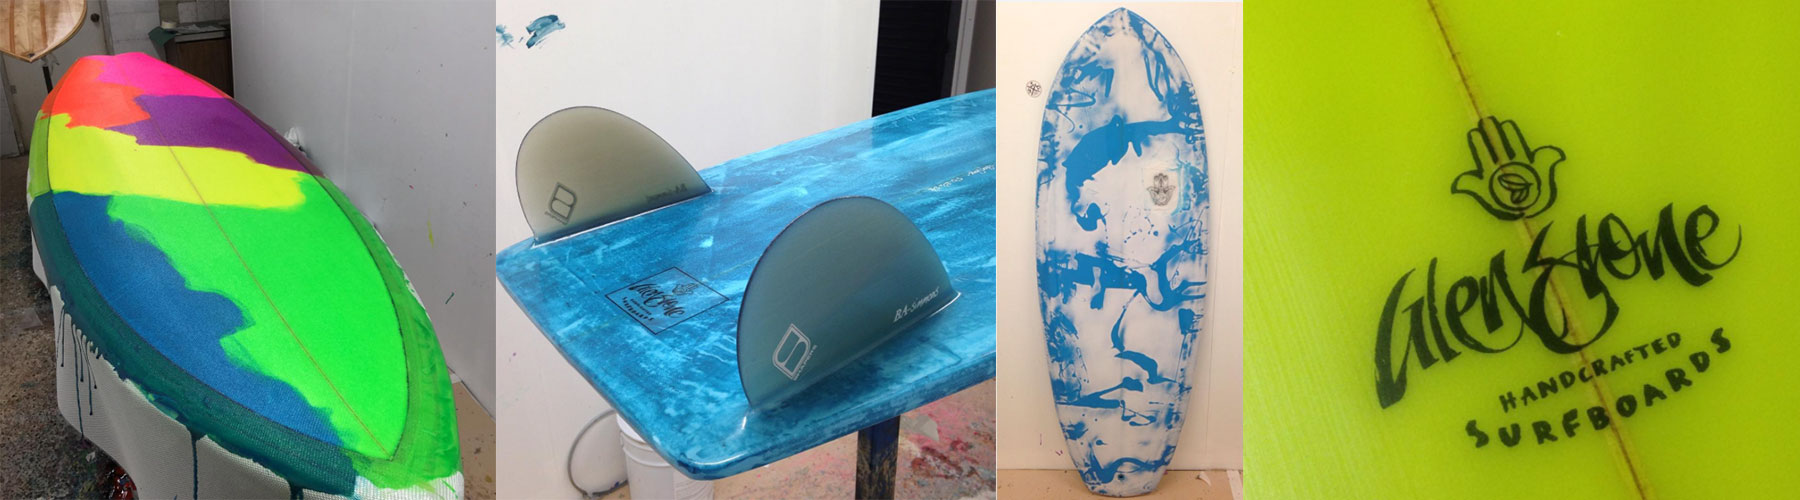 Glen Stone Designs Surfboards